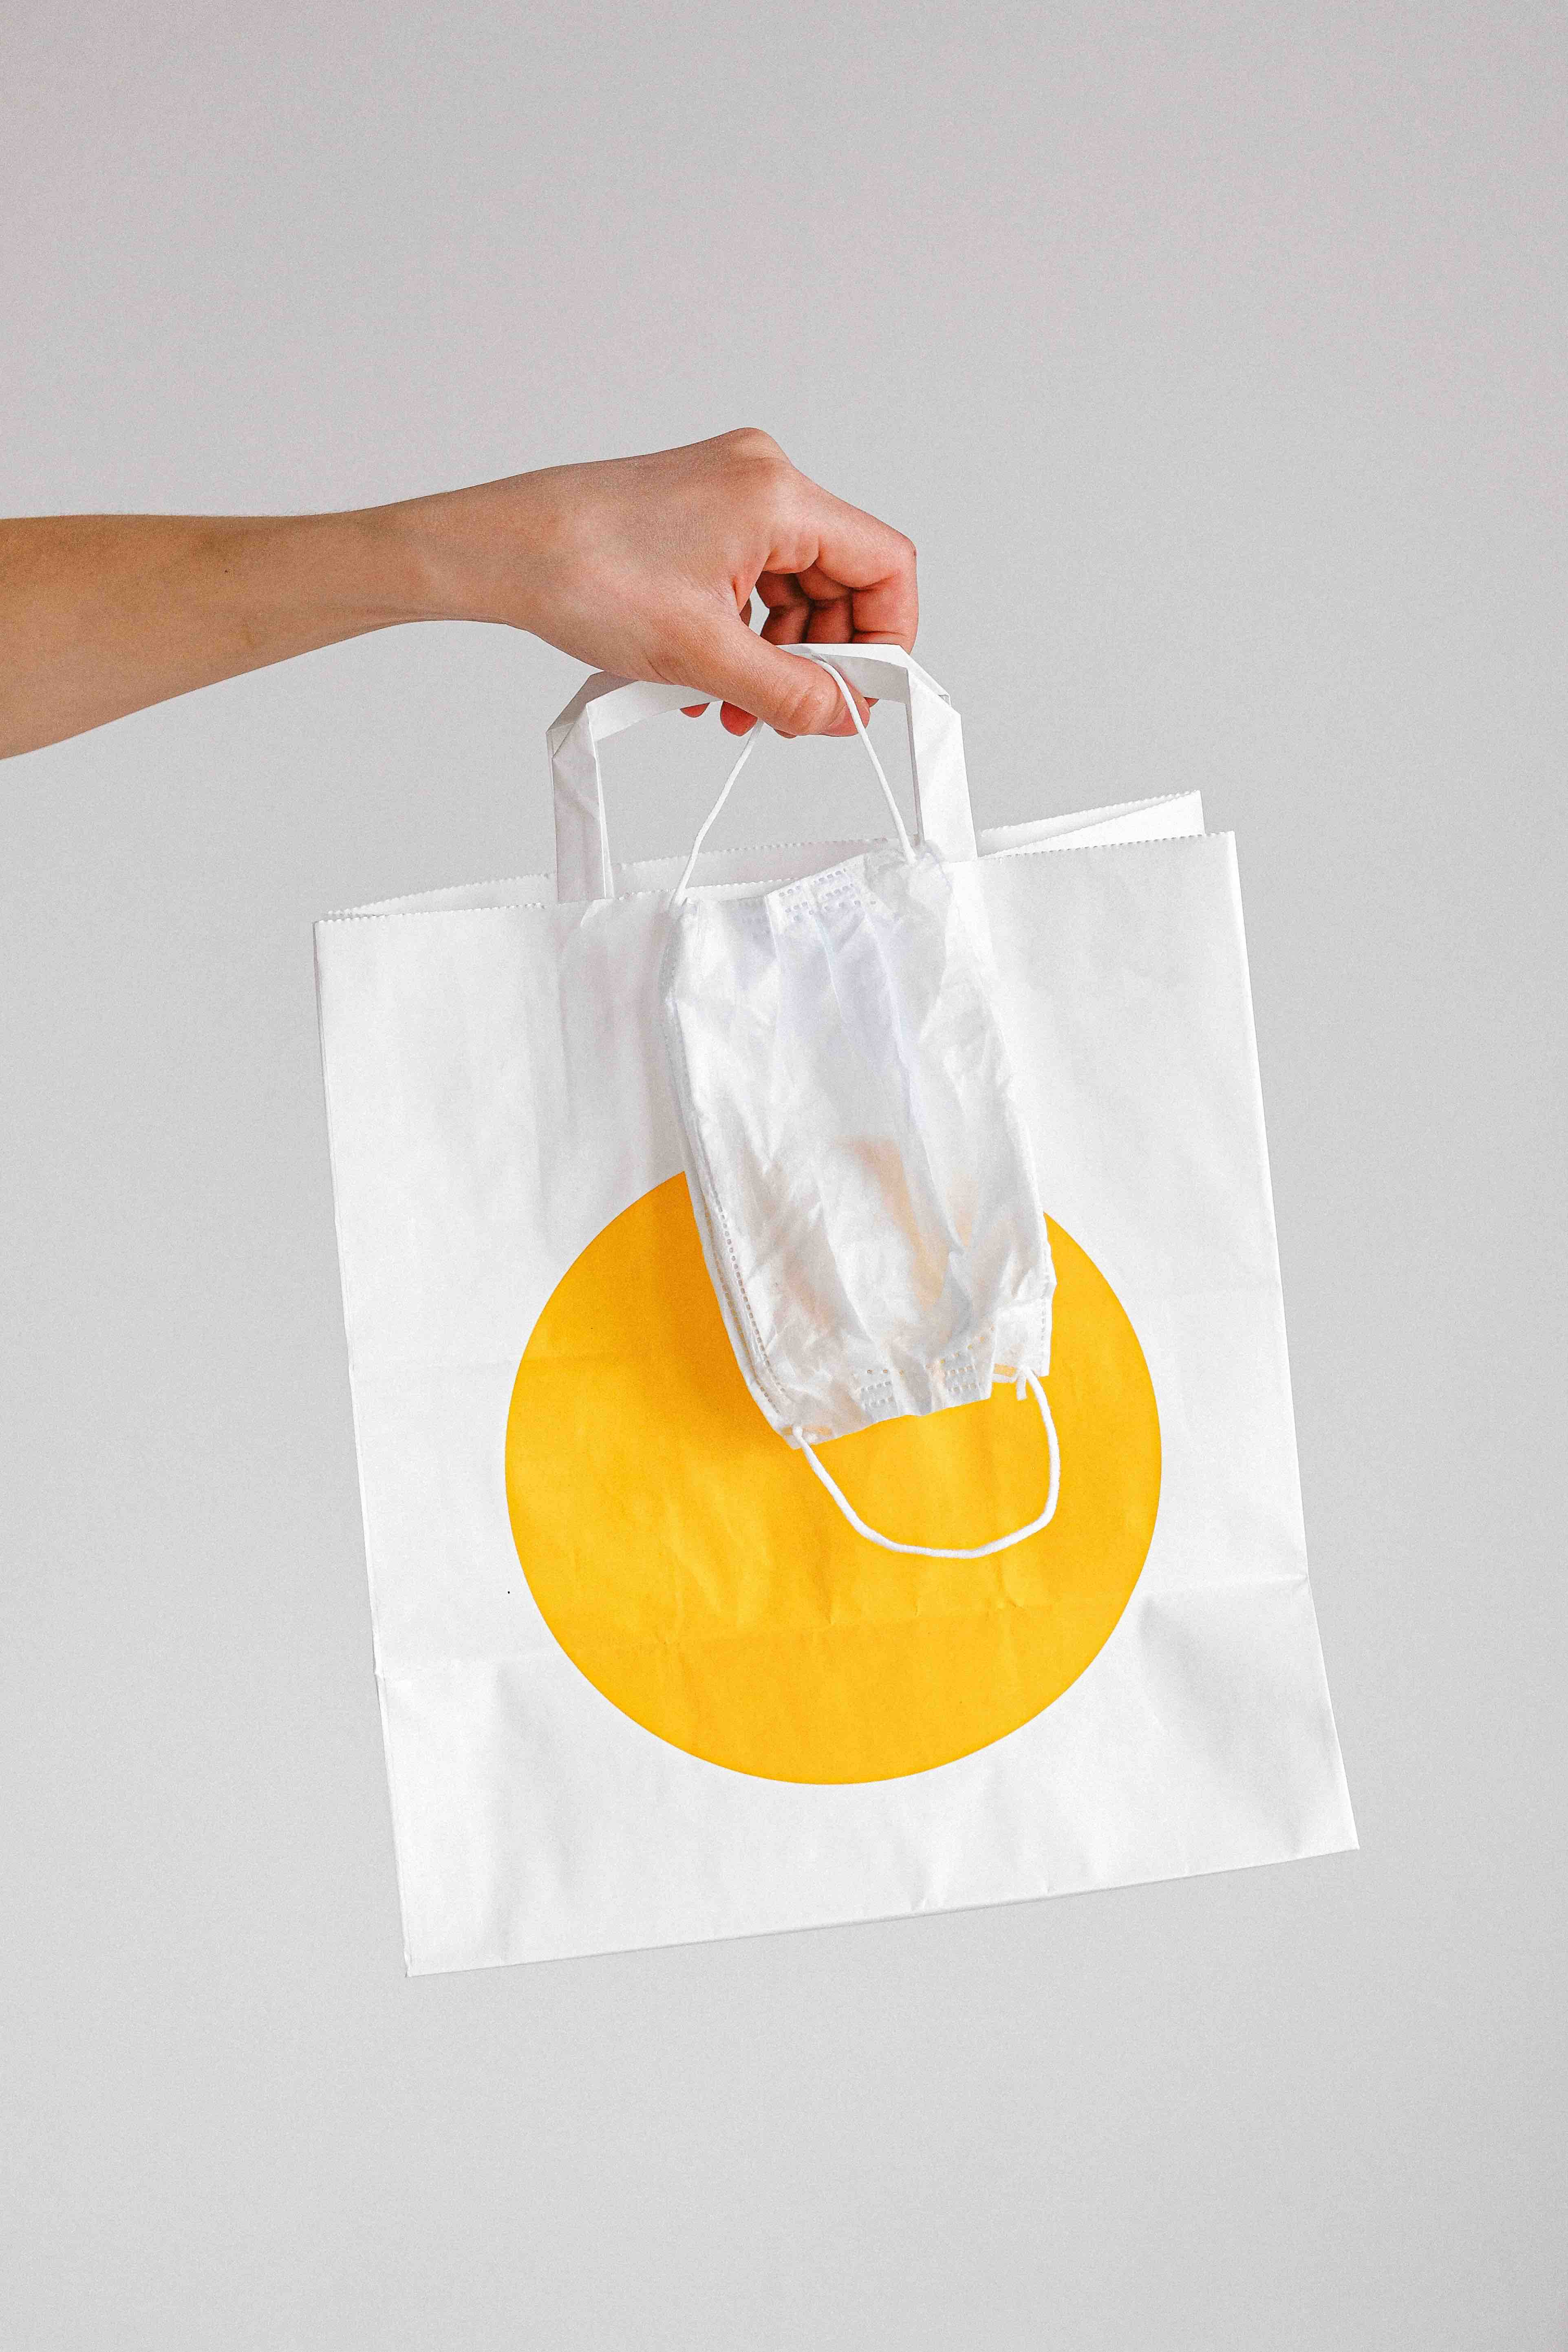 A hand holding a clothing shopping bag and face mask